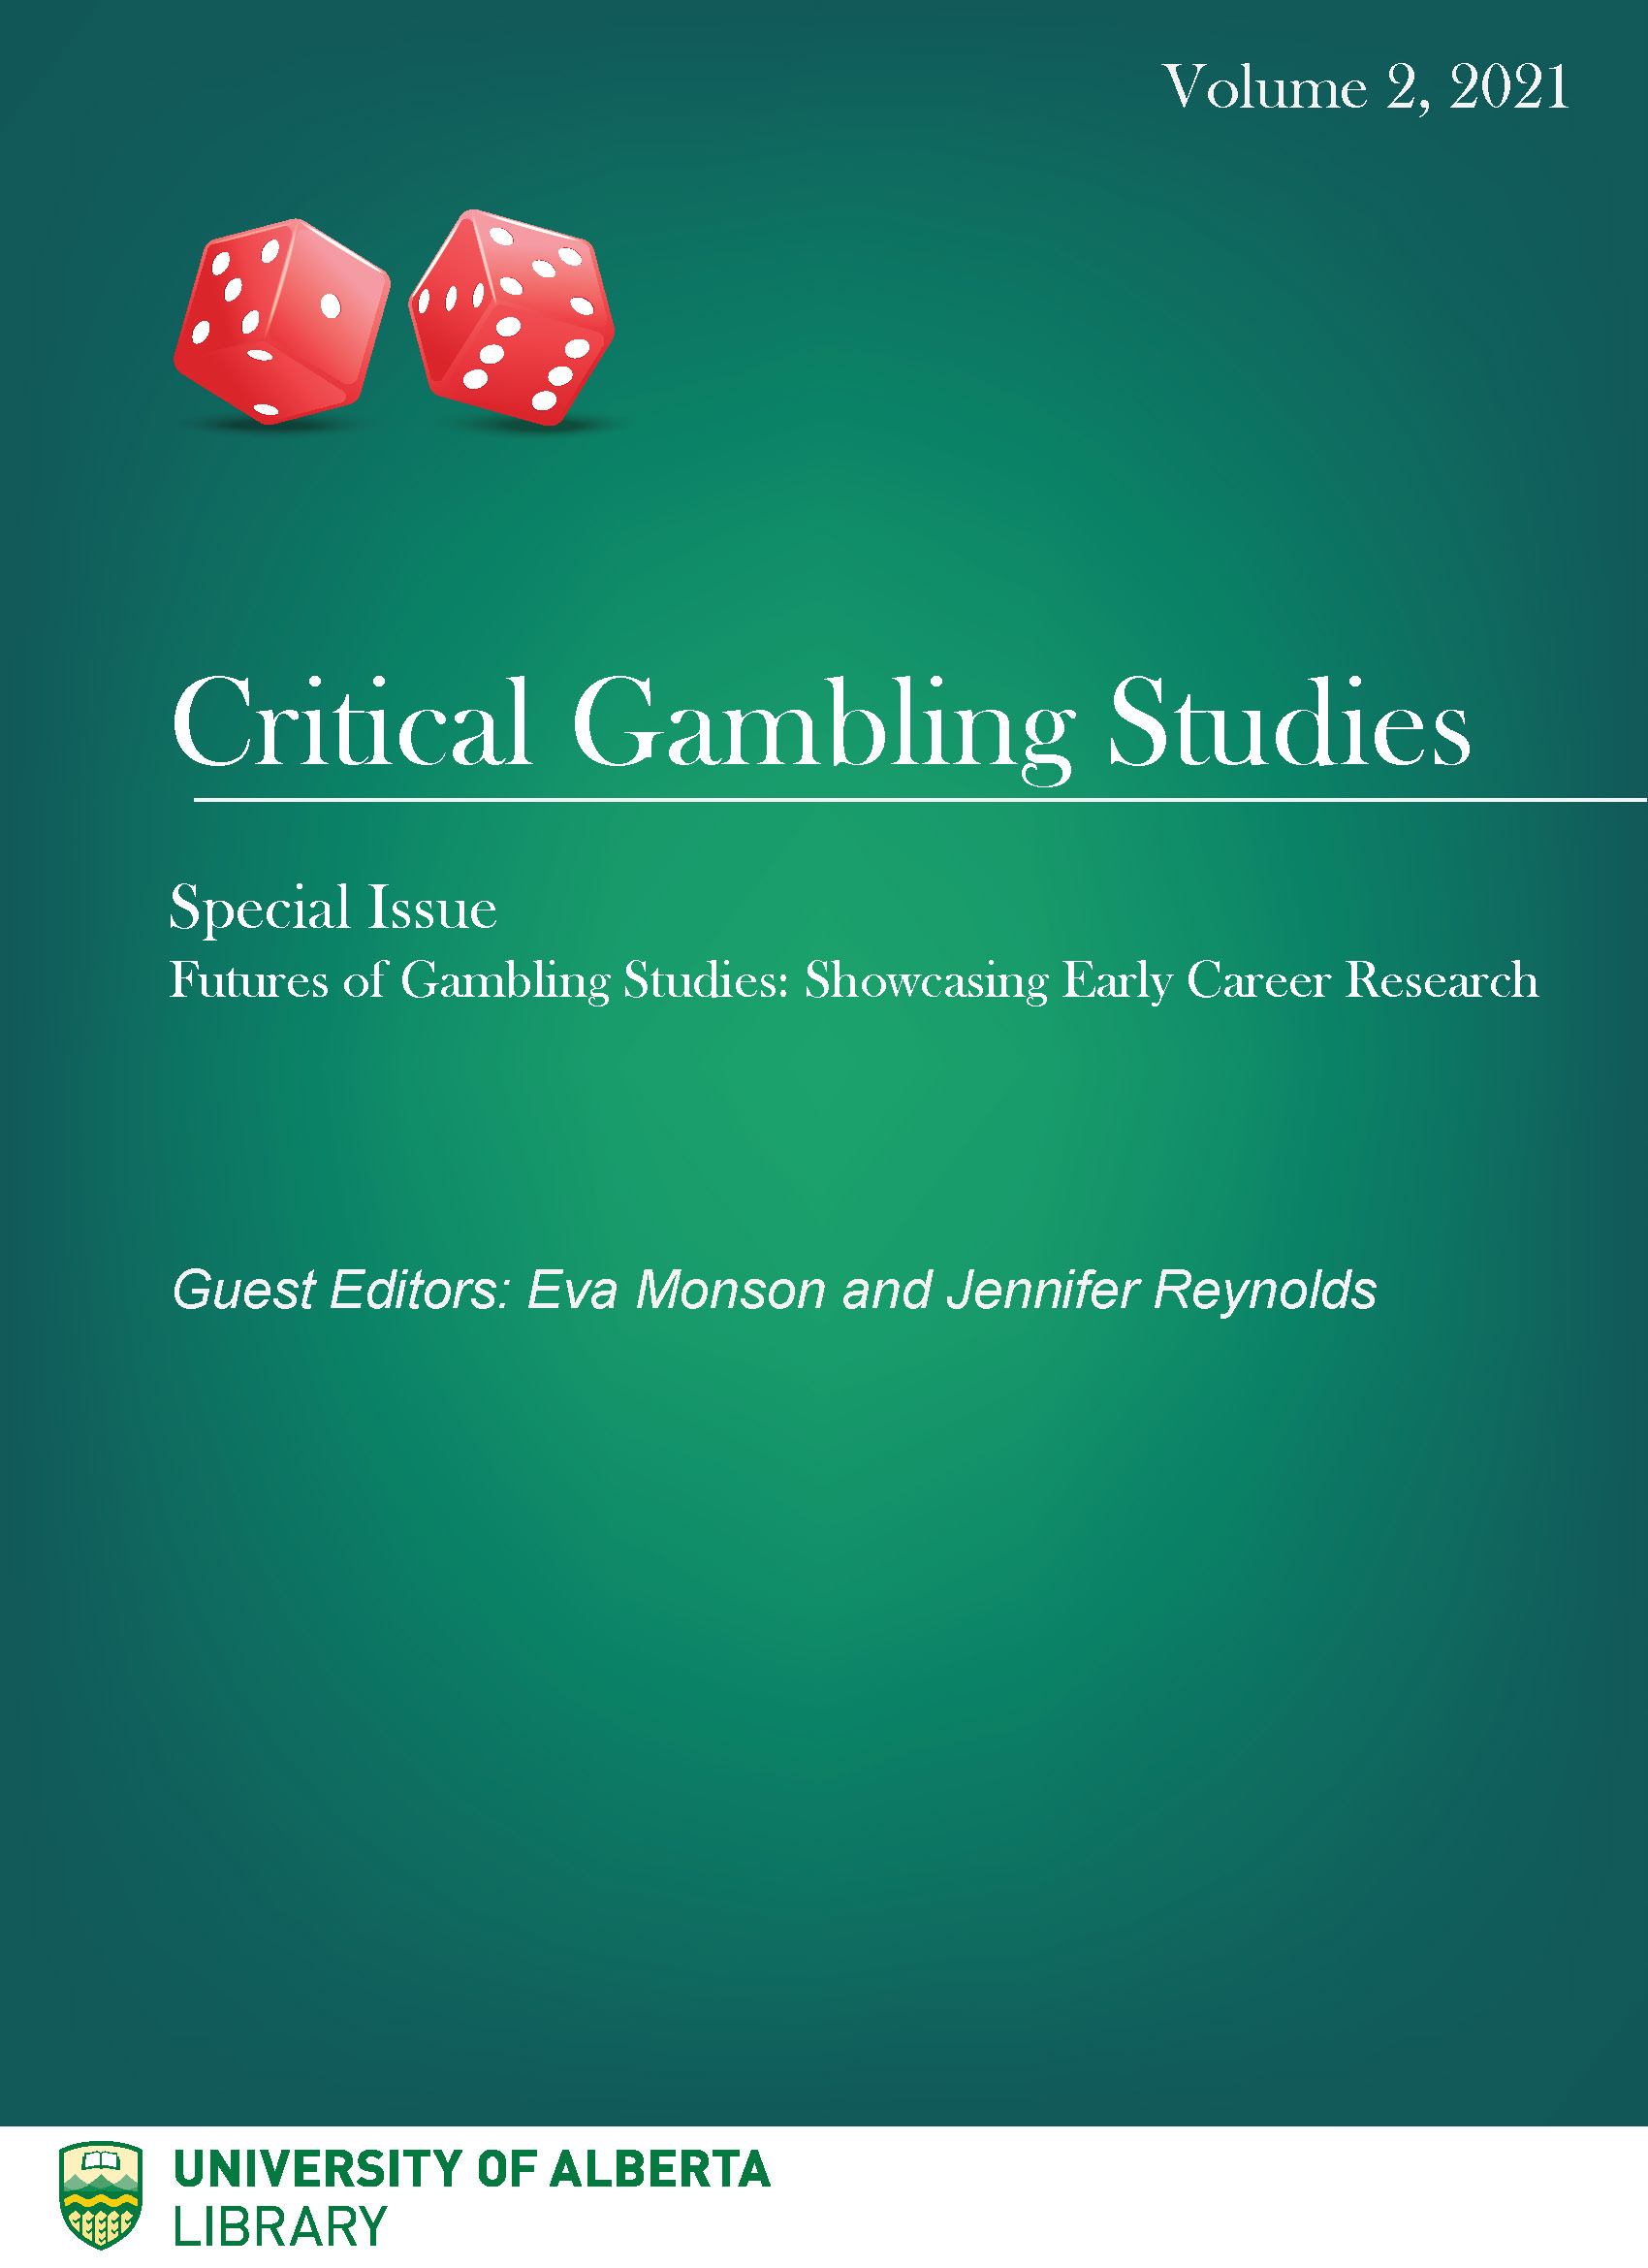 View Vol. 2 No. 1 (2021): Special Issue: Futures of Gambling Studies: Showcasing Early Career Research